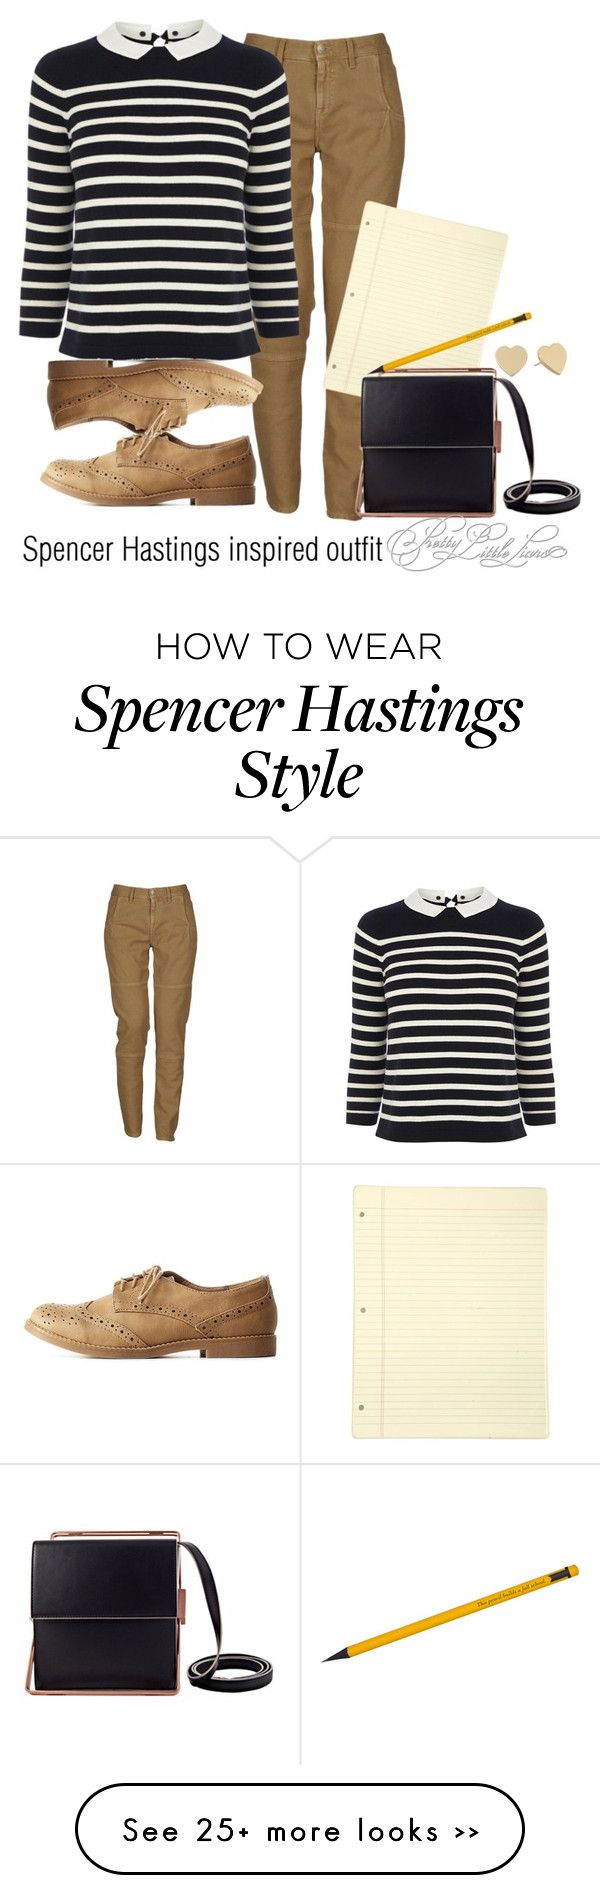 """""""Spencer Hastings inspired outfit/PLL"""" by tvdsarahmichele on Polyvore"""